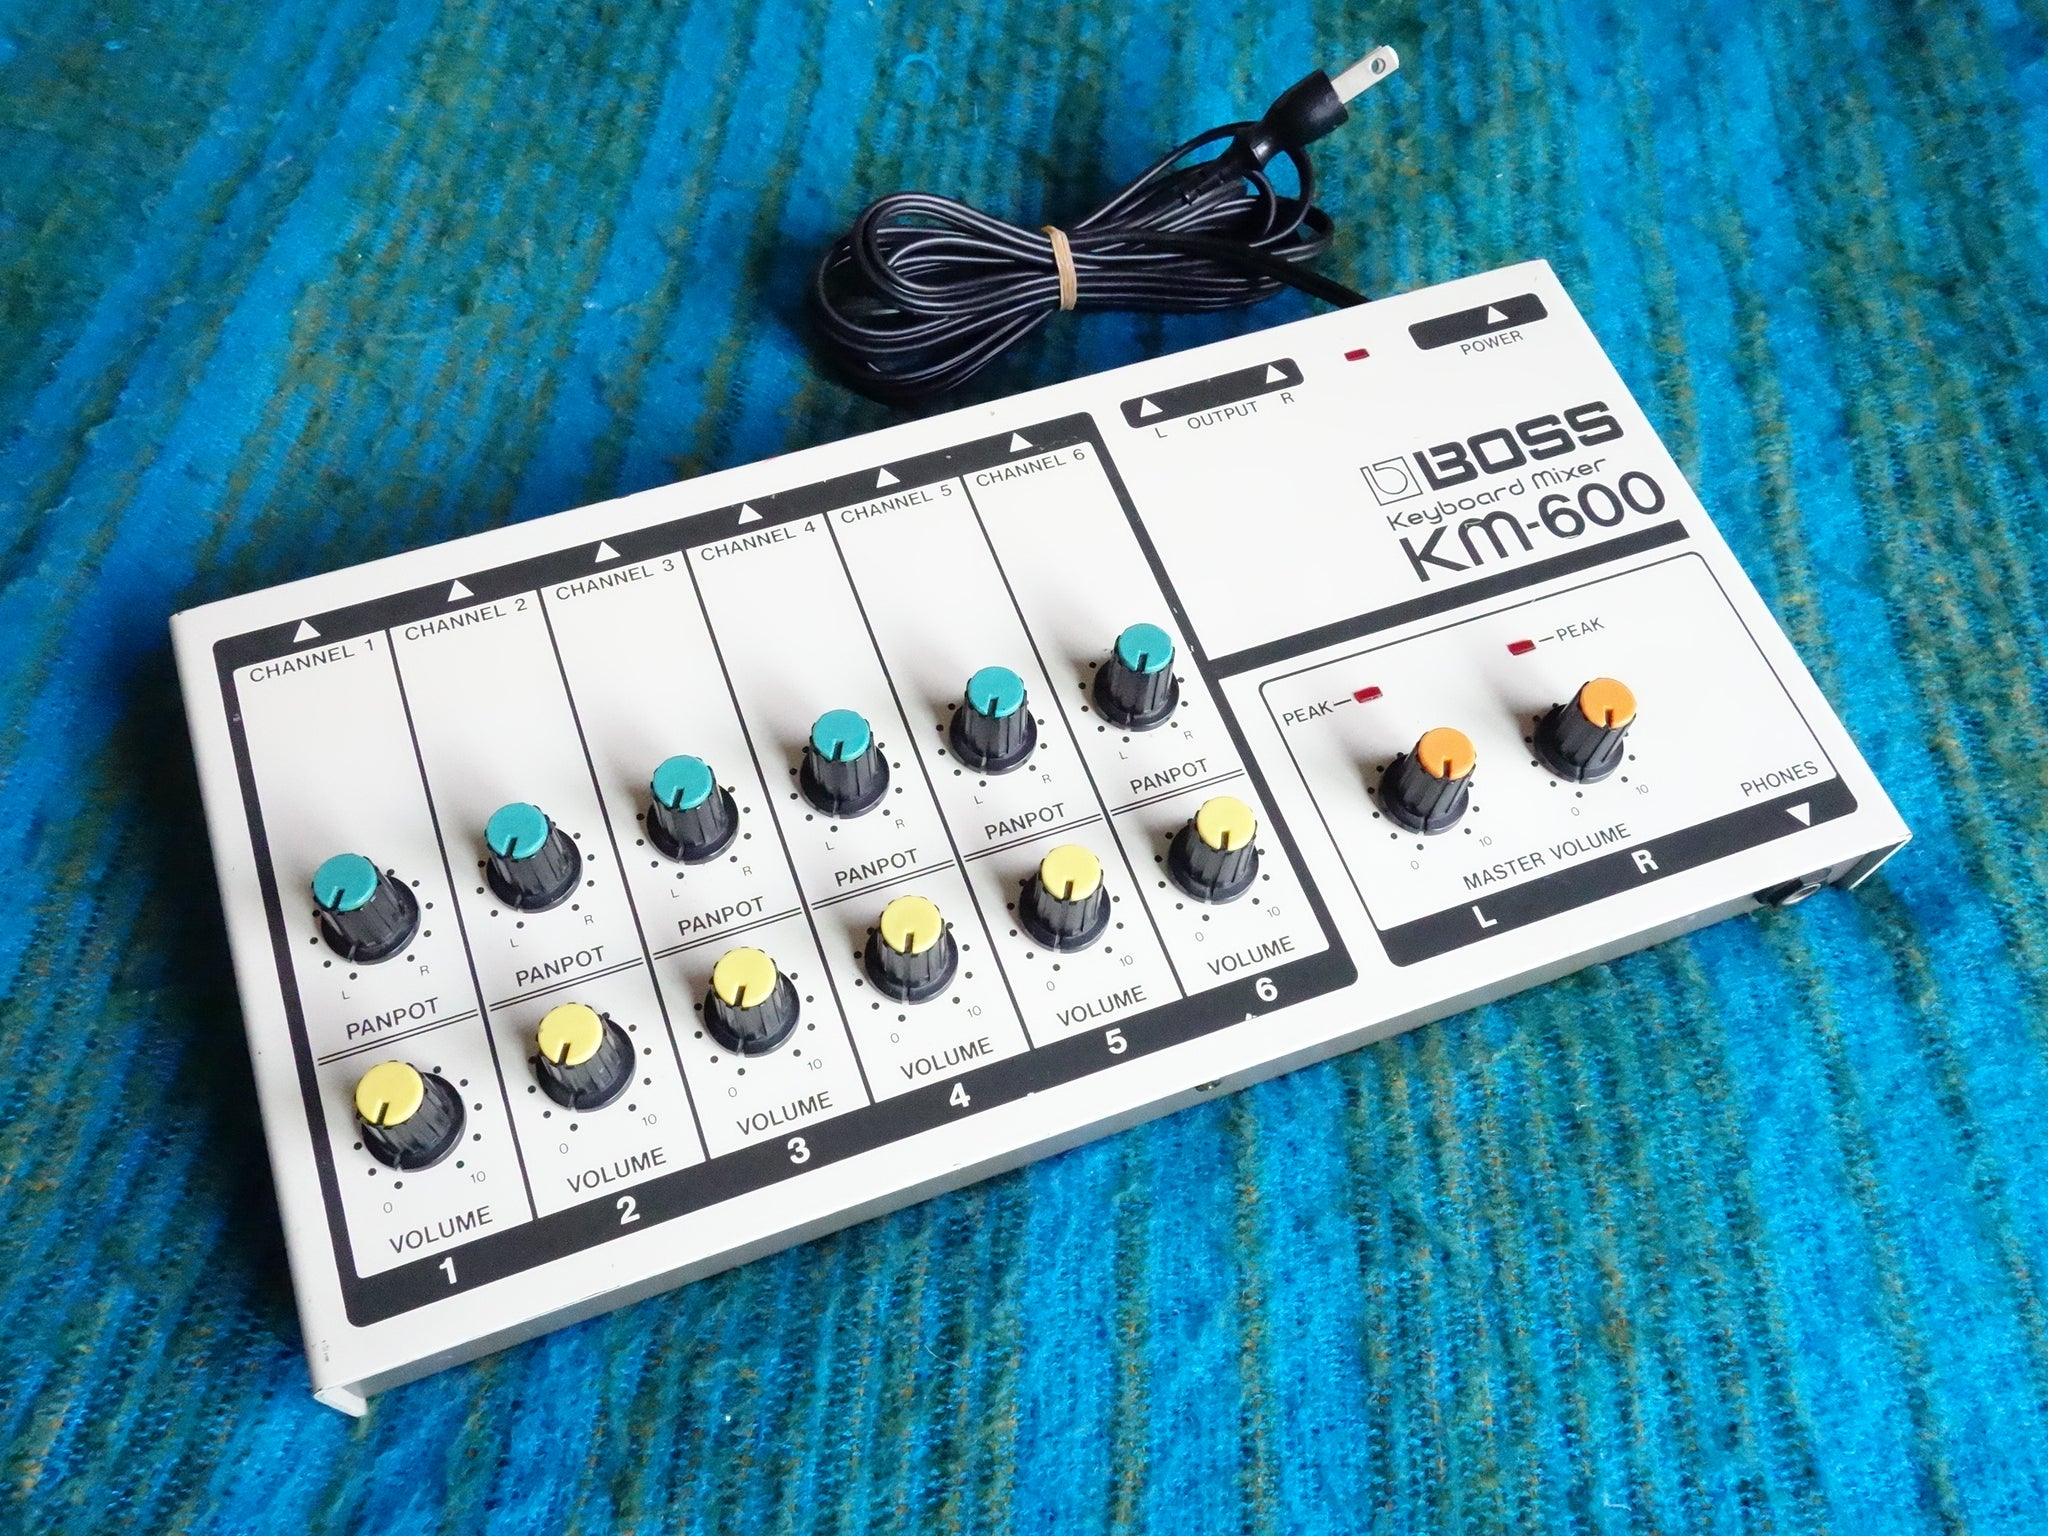 Boss KM-600 Keyboard Mixer - 6 Channel Vintage Mixer - Worldwide Shipping - E330